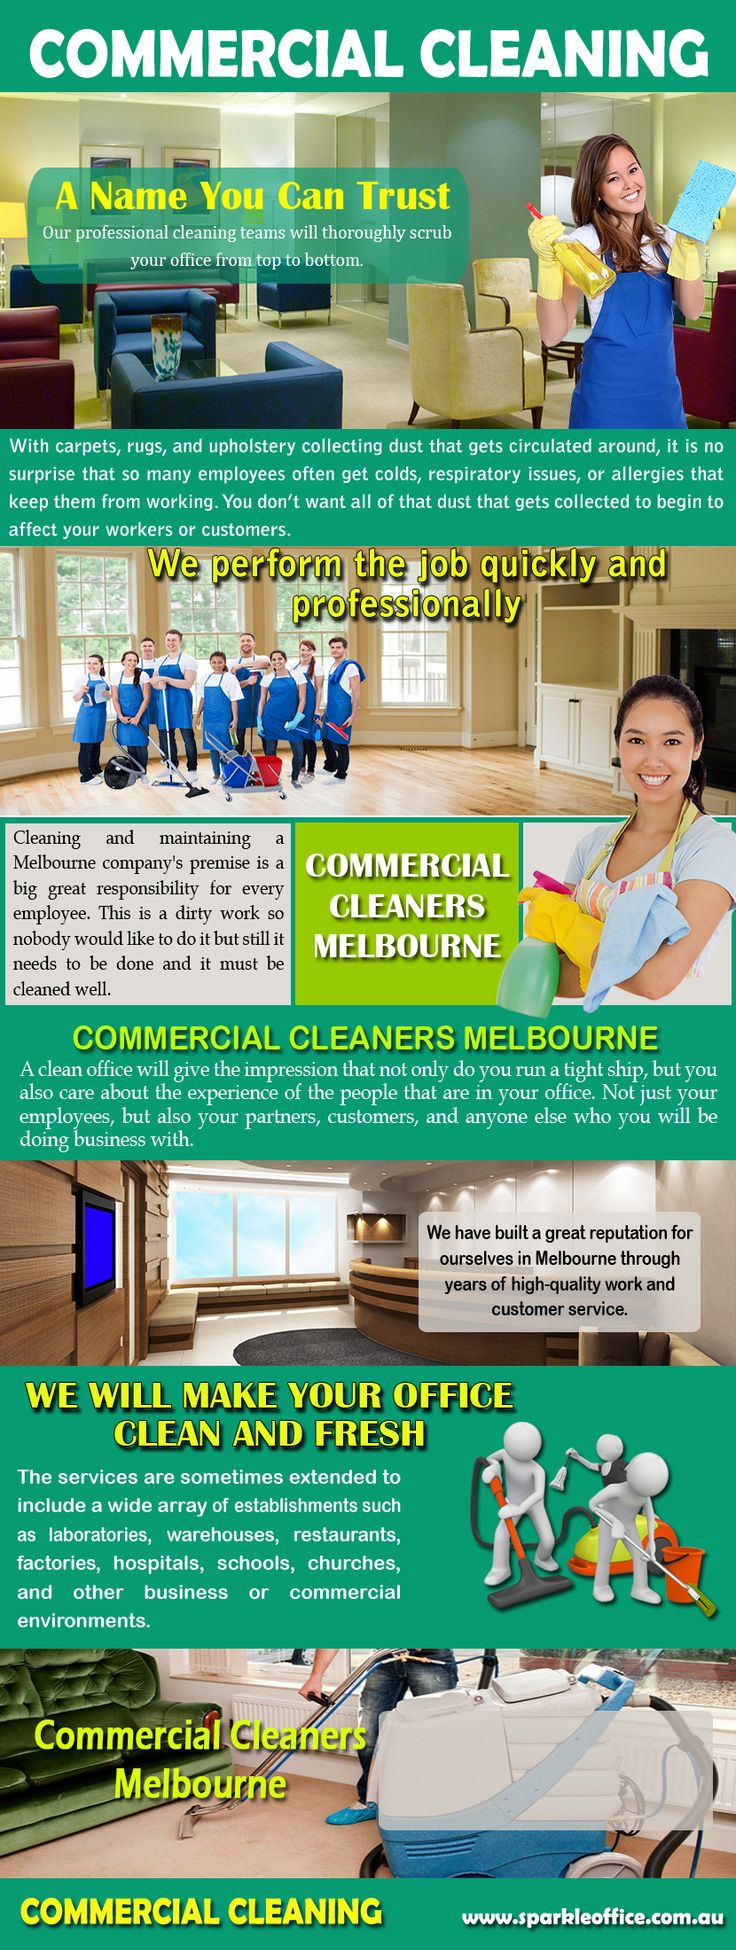 best ideas about cleaning services company toxic commercial commercial cleaning services commercial cleaners commercial products cleaning services company service companies regular toxic